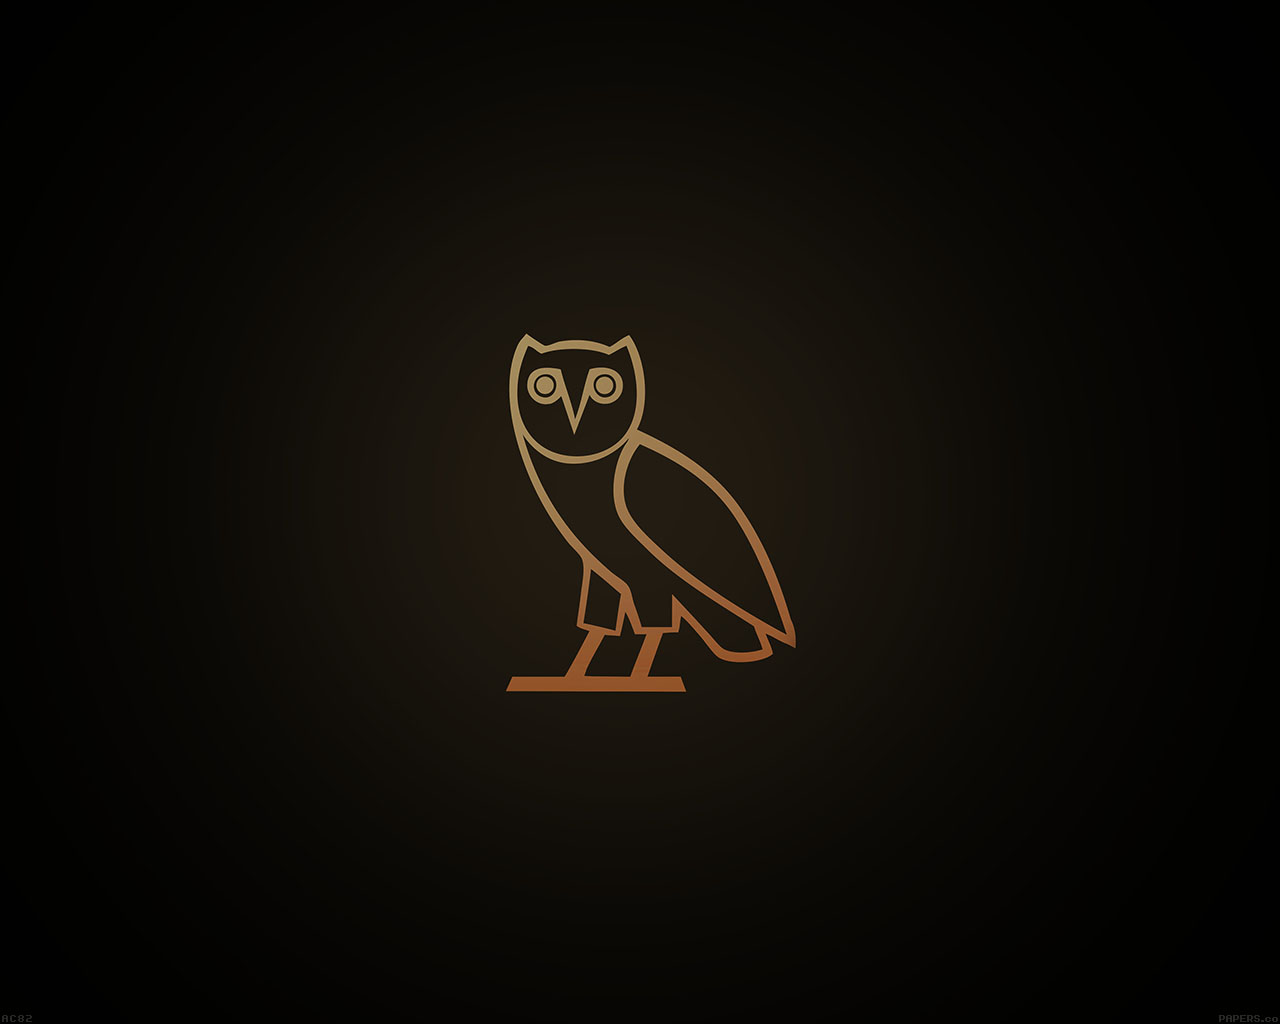 Fall Wallpaper For Laptop Ac82 Wallpaper Ovo Owl Logo Dark Minimal Papers Co